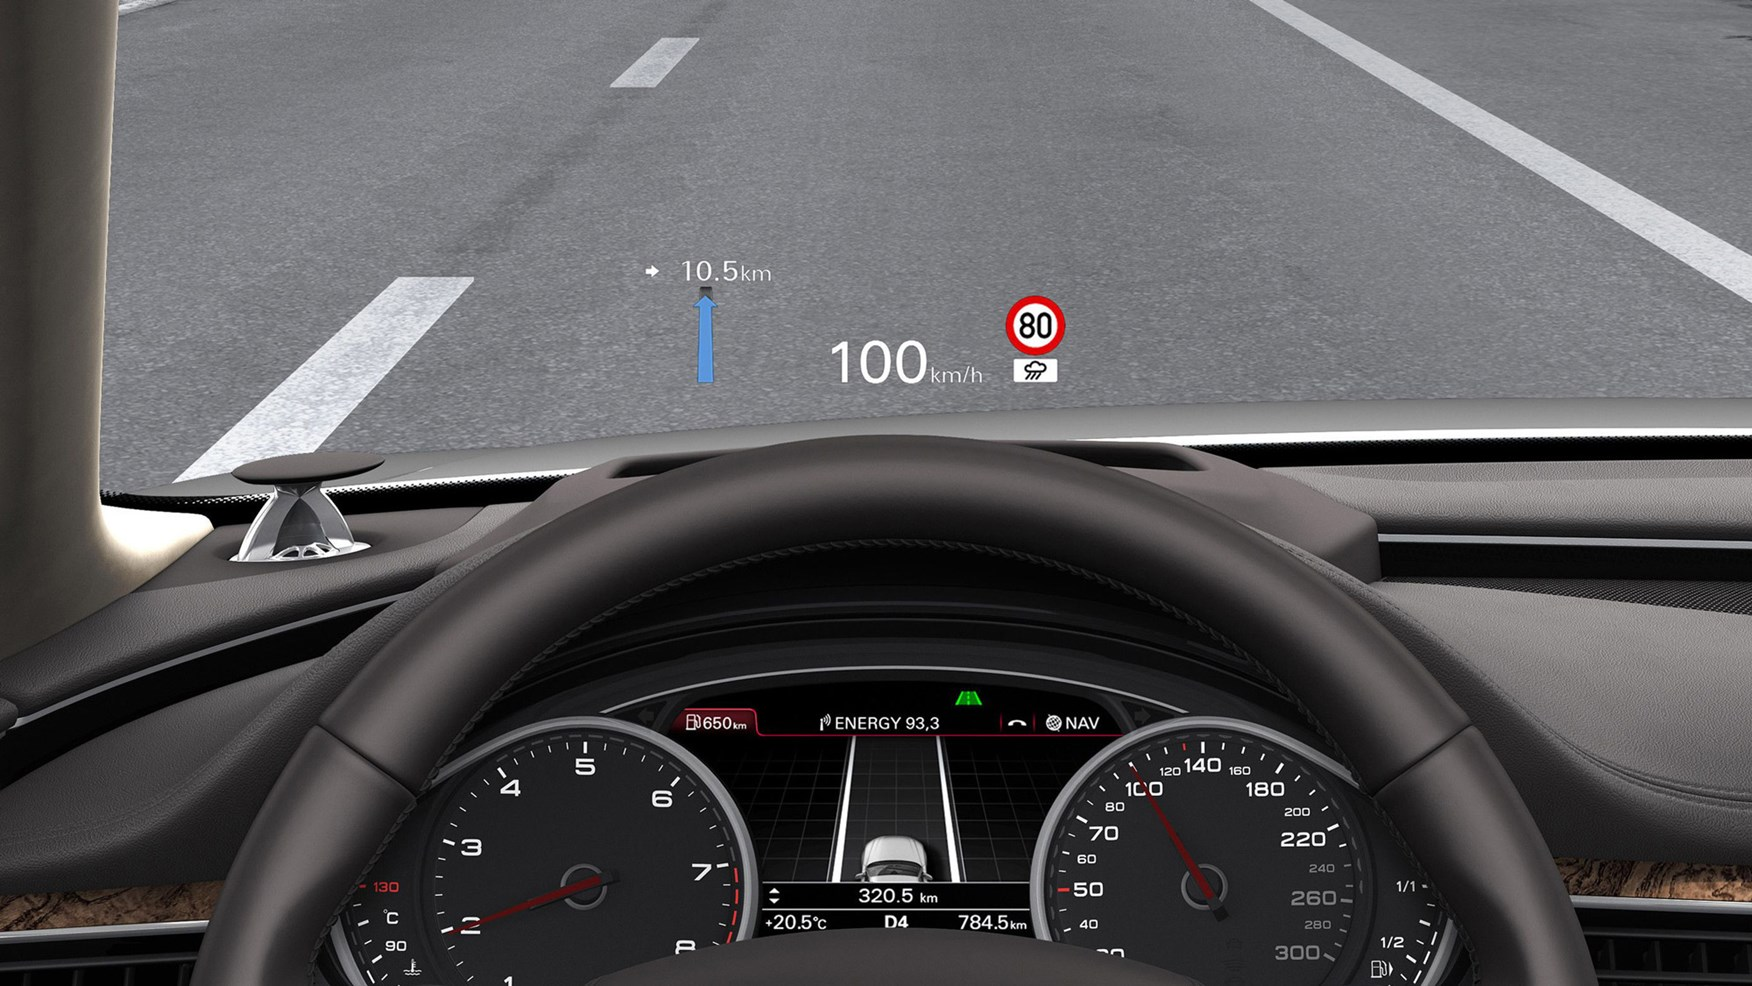 BMW Head-up Display: How it works?